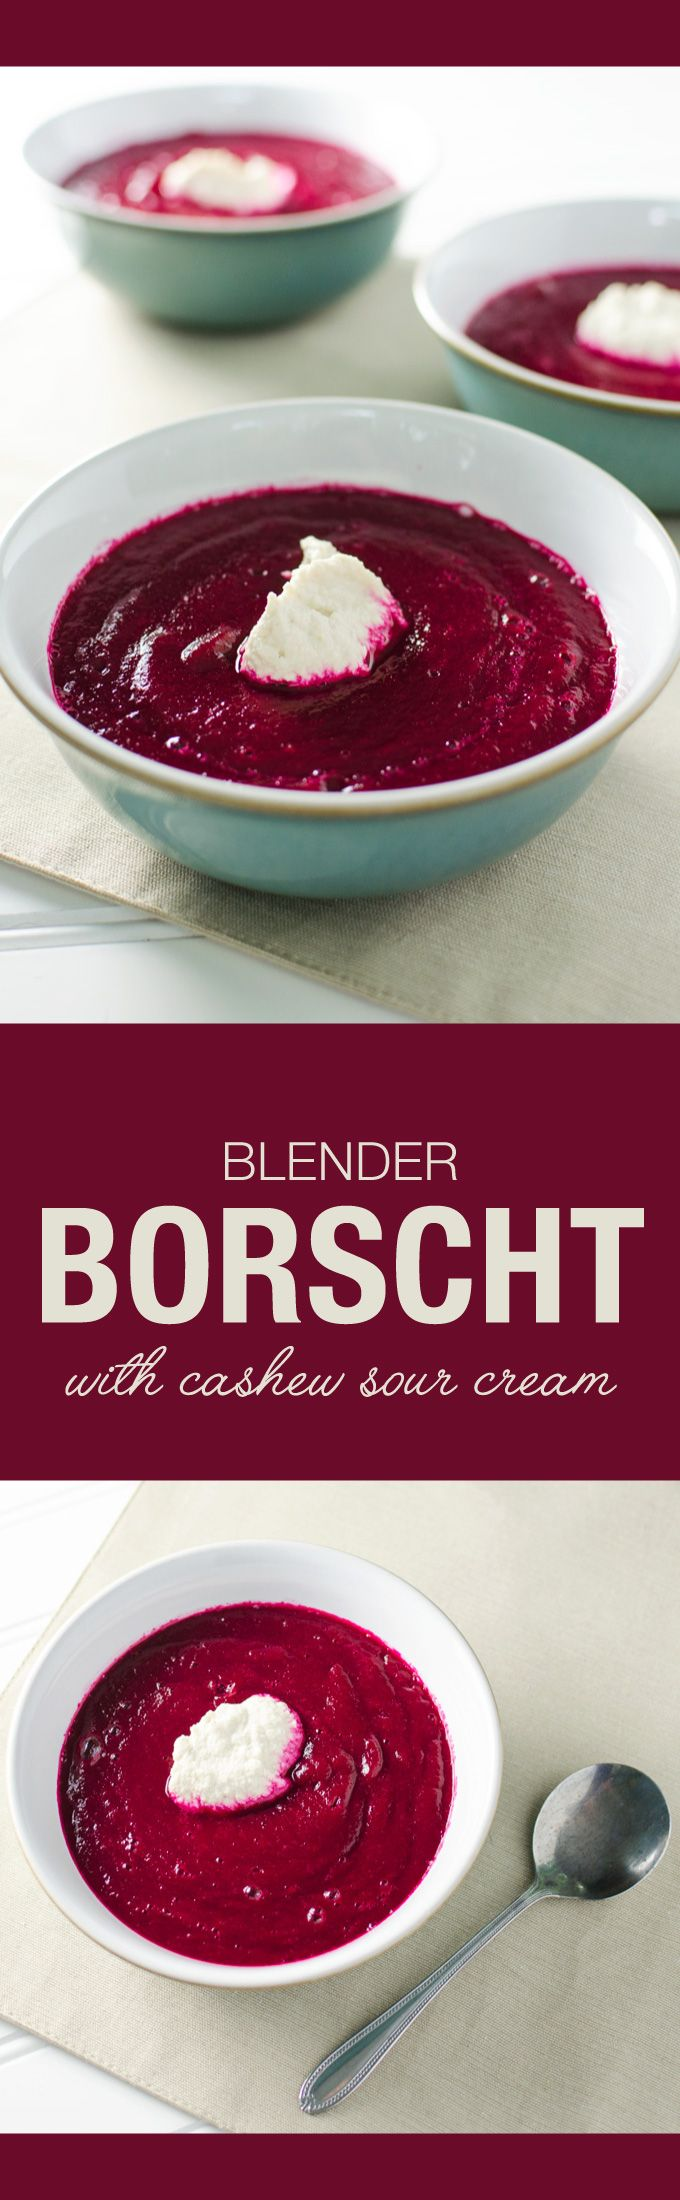 Blender Borscht - a.k.a Cold Beet Soup - a delicious vegan and gluten free recipe | VeggiePrimer.com